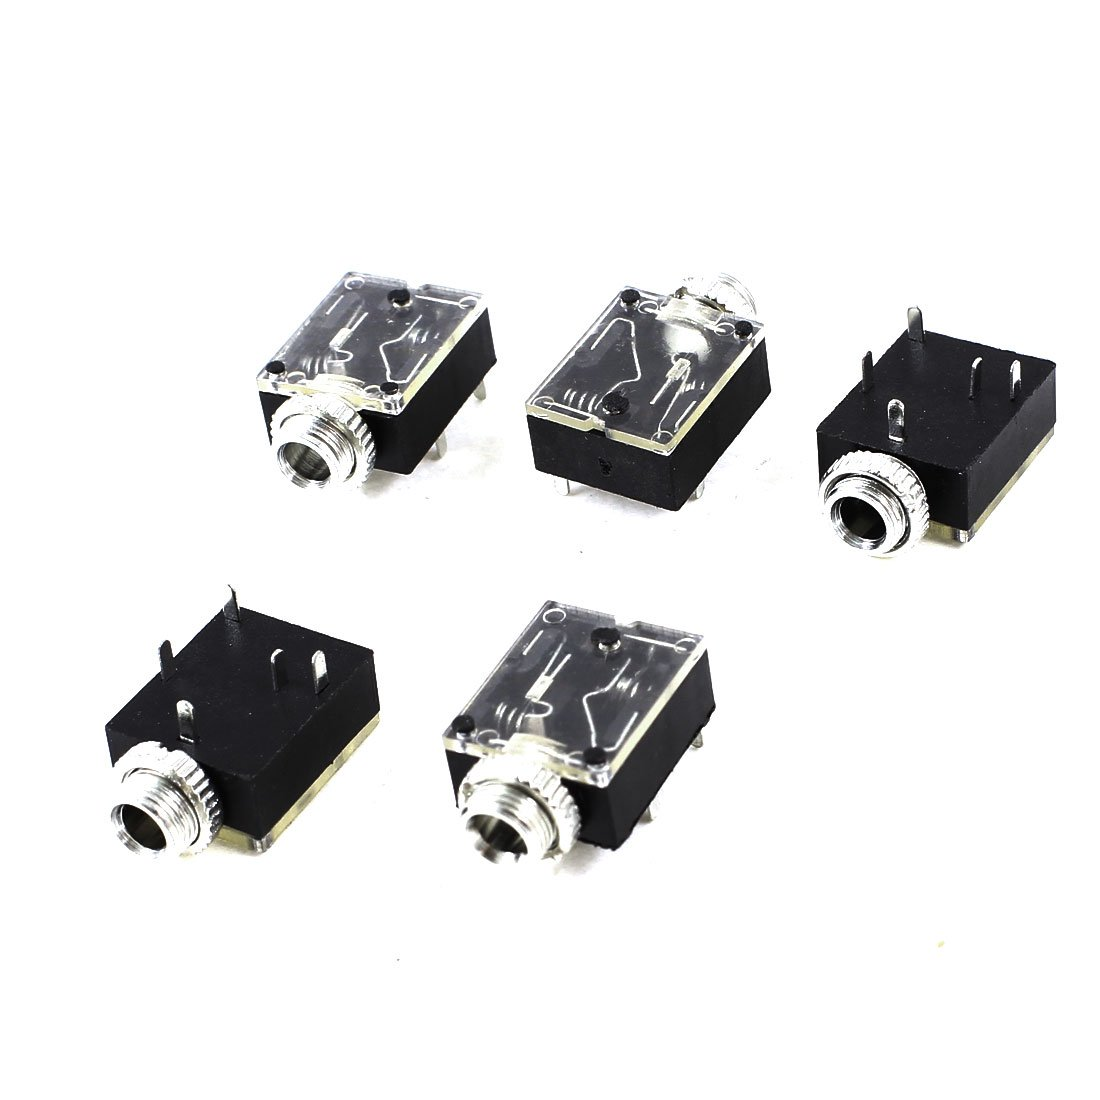 IMC Hot 5 Pcs 5 Pin 3.5mm Audio Mono Jack Socket PCB Panel Mount for Headphone 8pcs cylinder clip end pin mono panel output jack socket for electric guitar bass 6 35mm